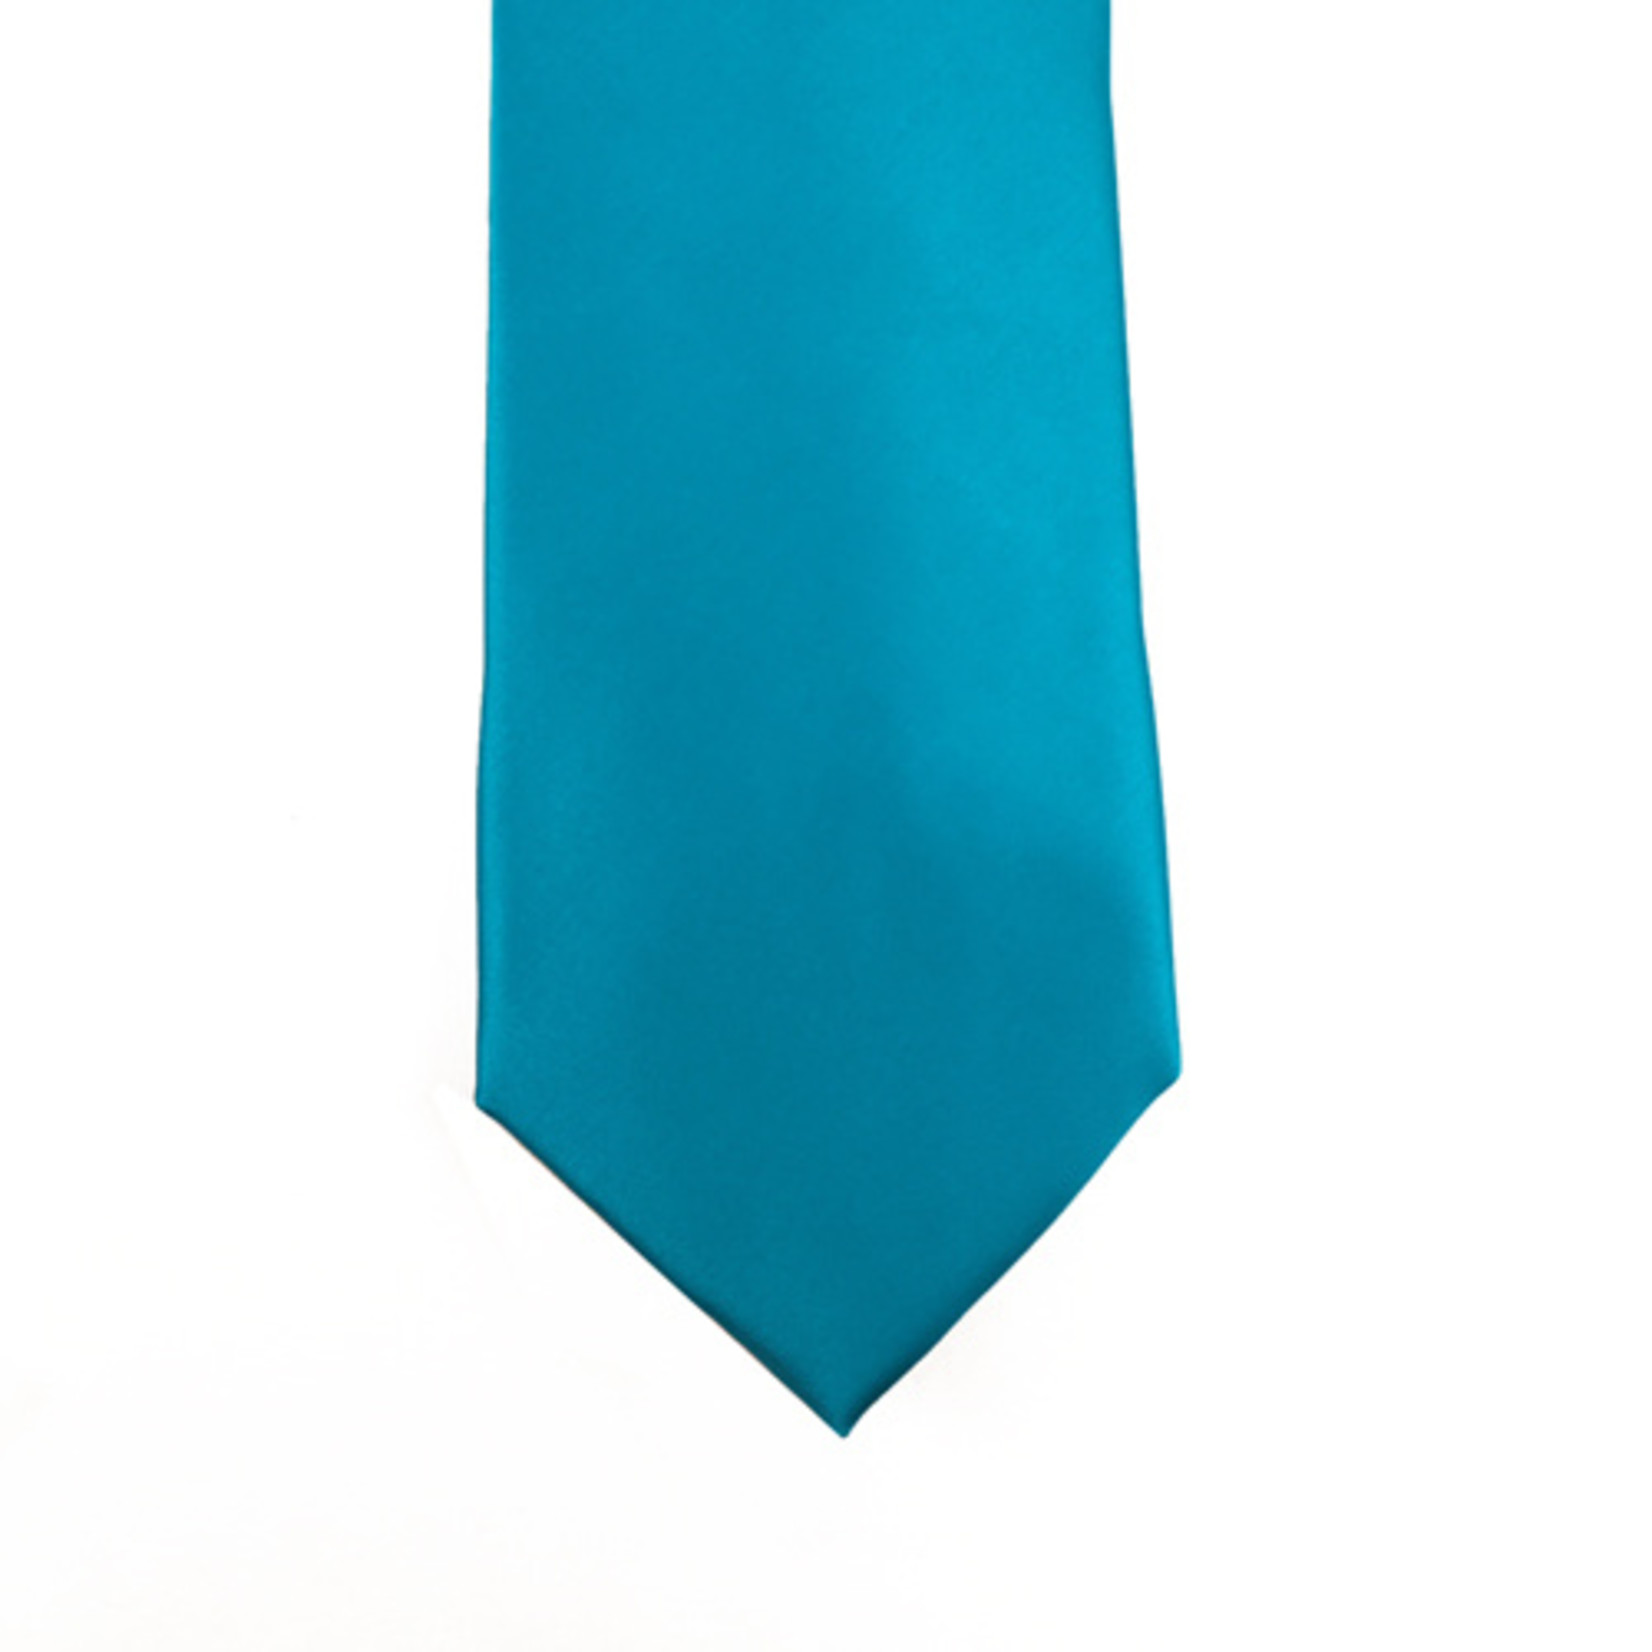 Knotz M100-20 Solid Turquoise Tie